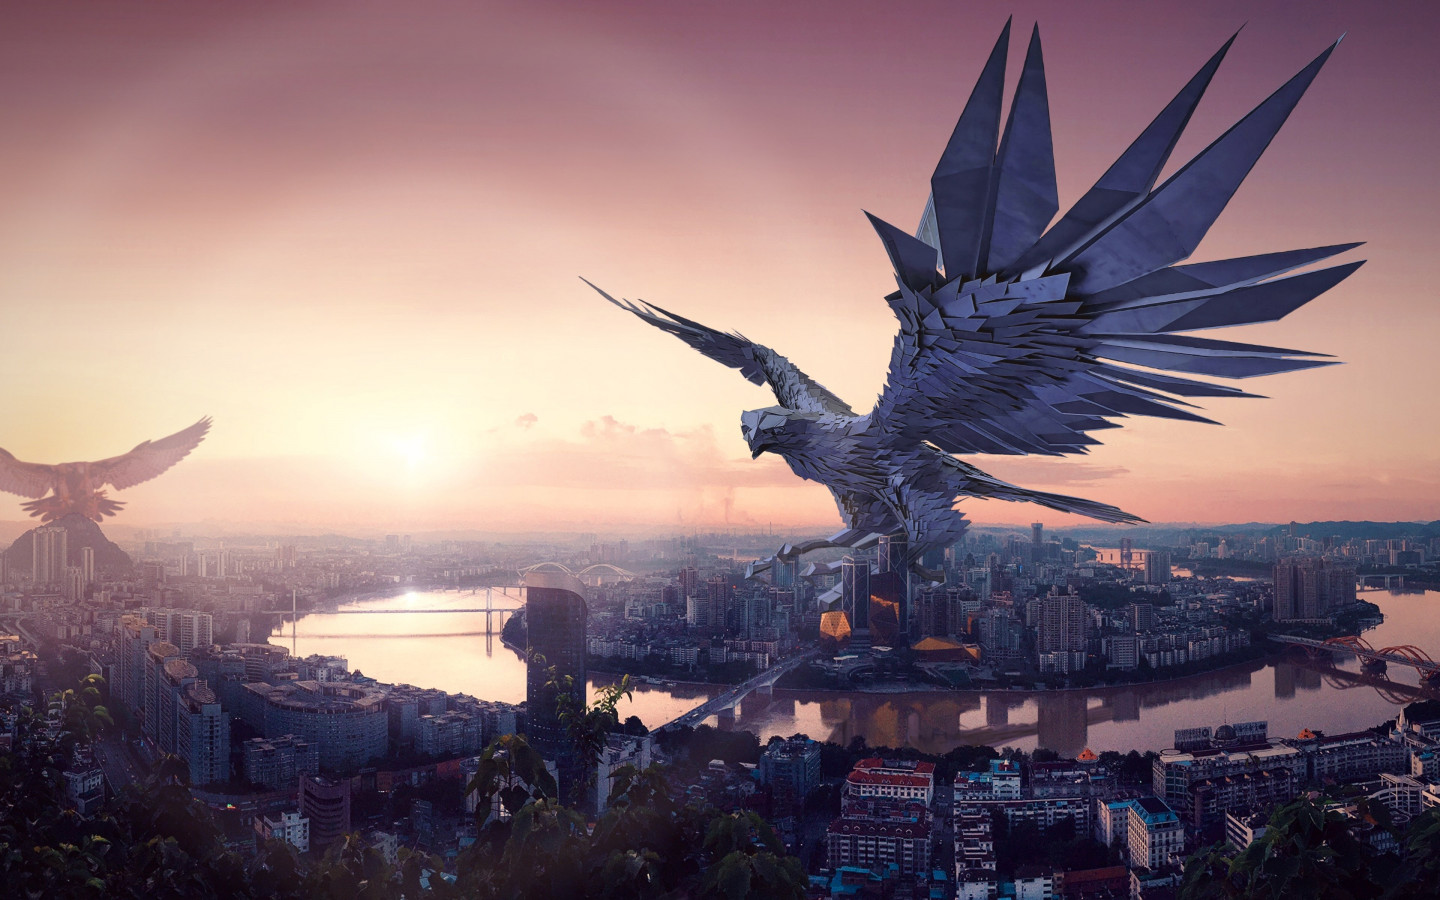 The falcon, protector of the city wallpaper 1440x900